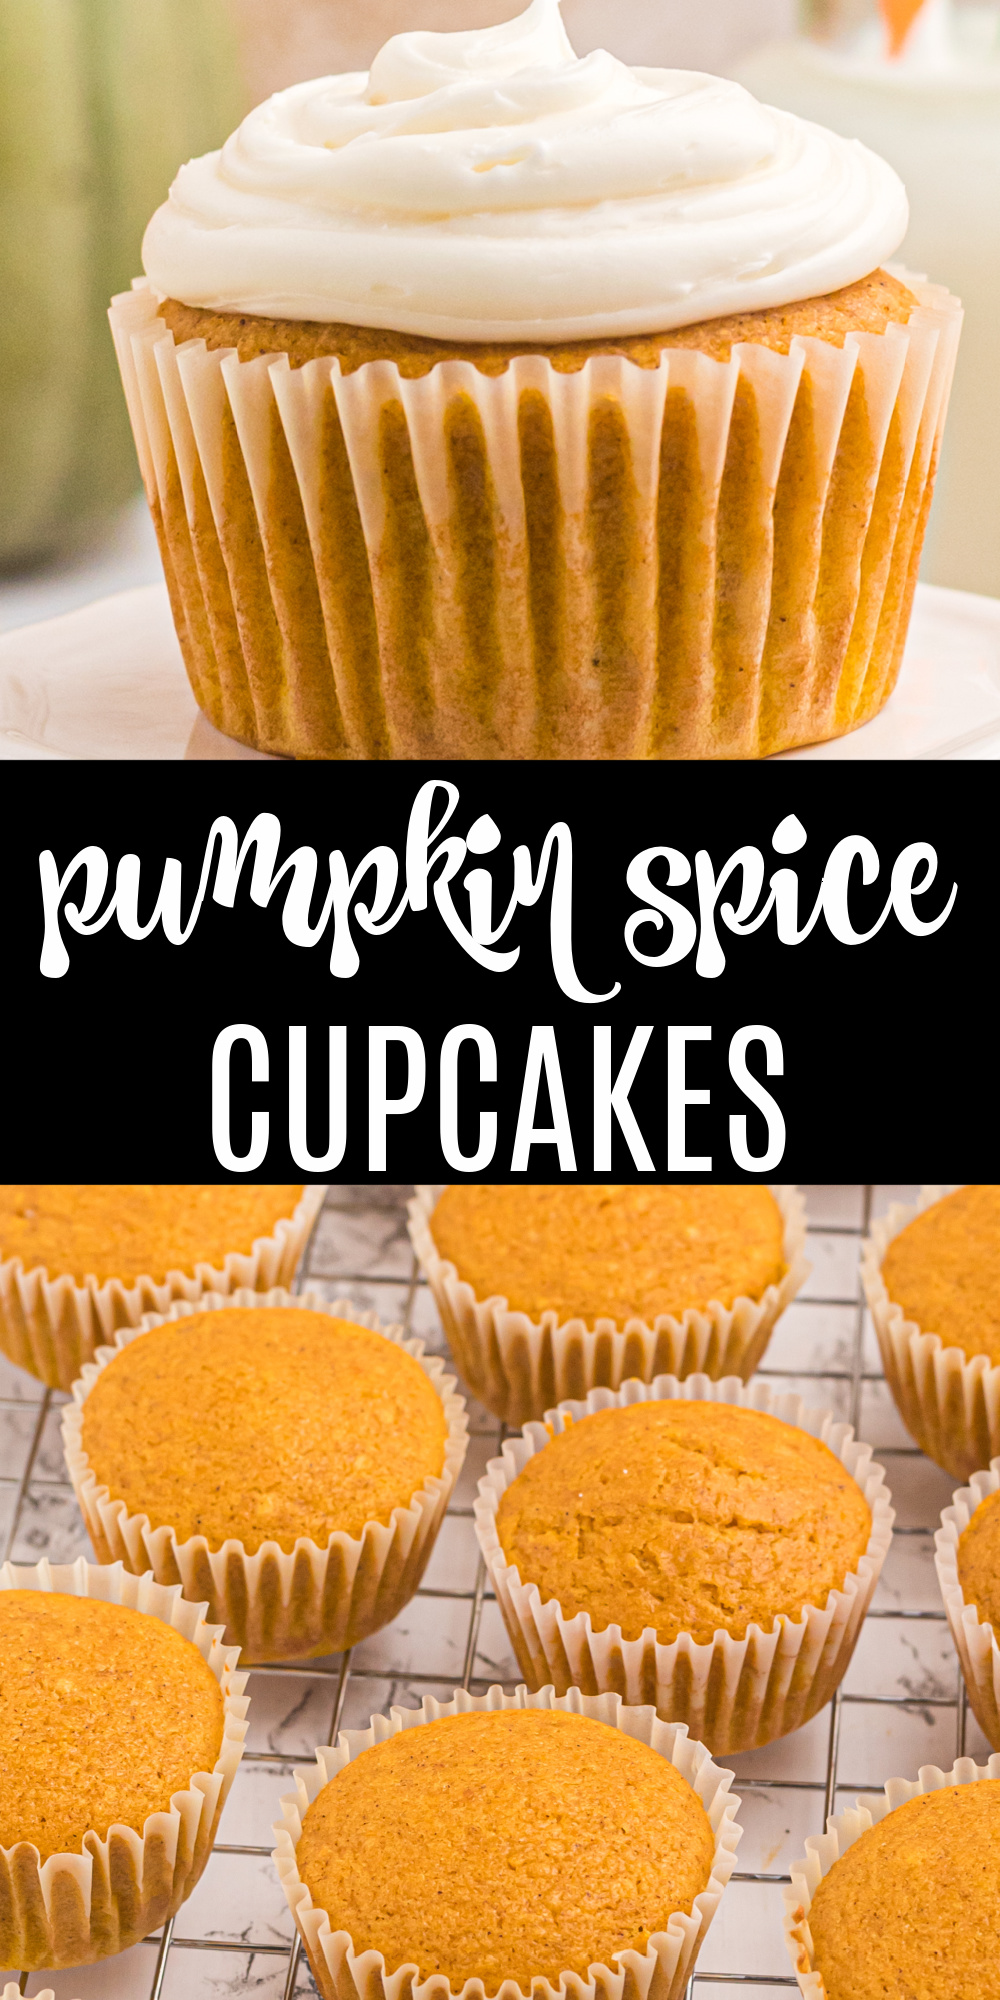 These pumpkin spice cupcakes are full of that wonderful pumpkin flavor. Any pumpkin lover will agree that this perfect pumpkin cupcake recipe is the perfect way to welcome in fall. Add this to your list of delicious pumpkin recipes today!